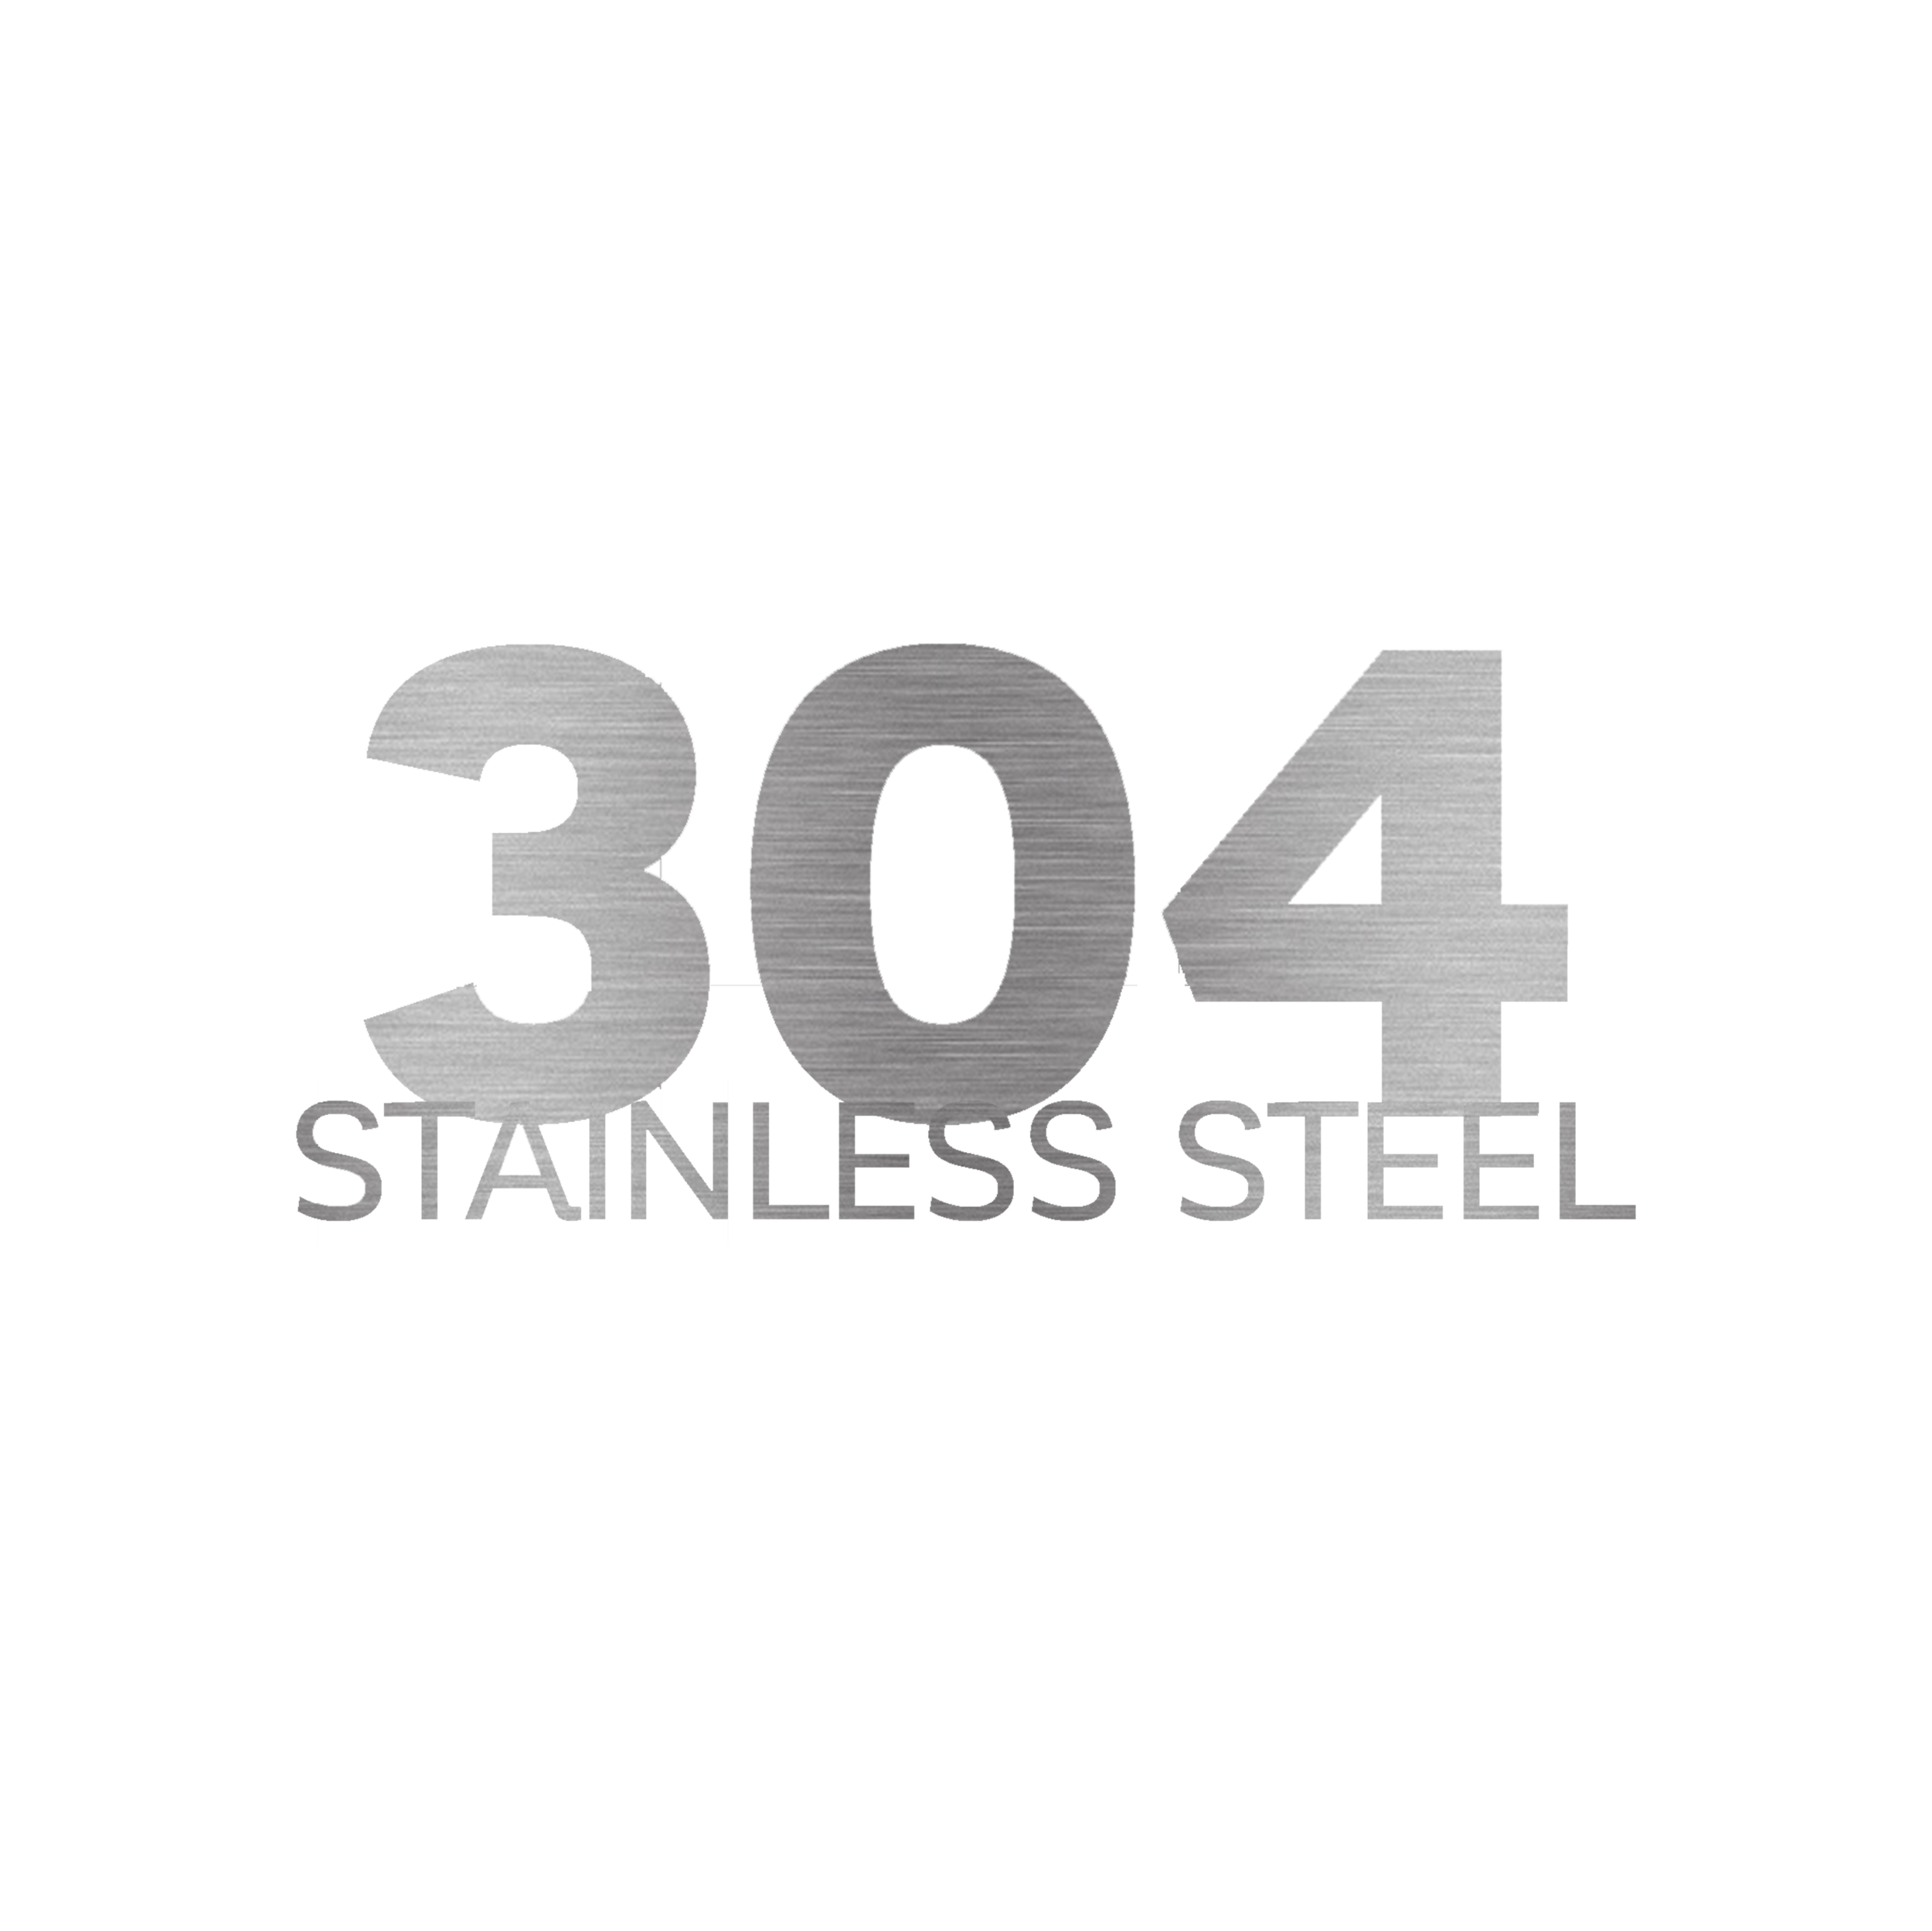 304 Grade Stainless Steel - SYNCRO sinks are manufactured using 304 grade stainless steel in 1.2mm. The sinks go through an extensive process to ensure they are of the highest quality.